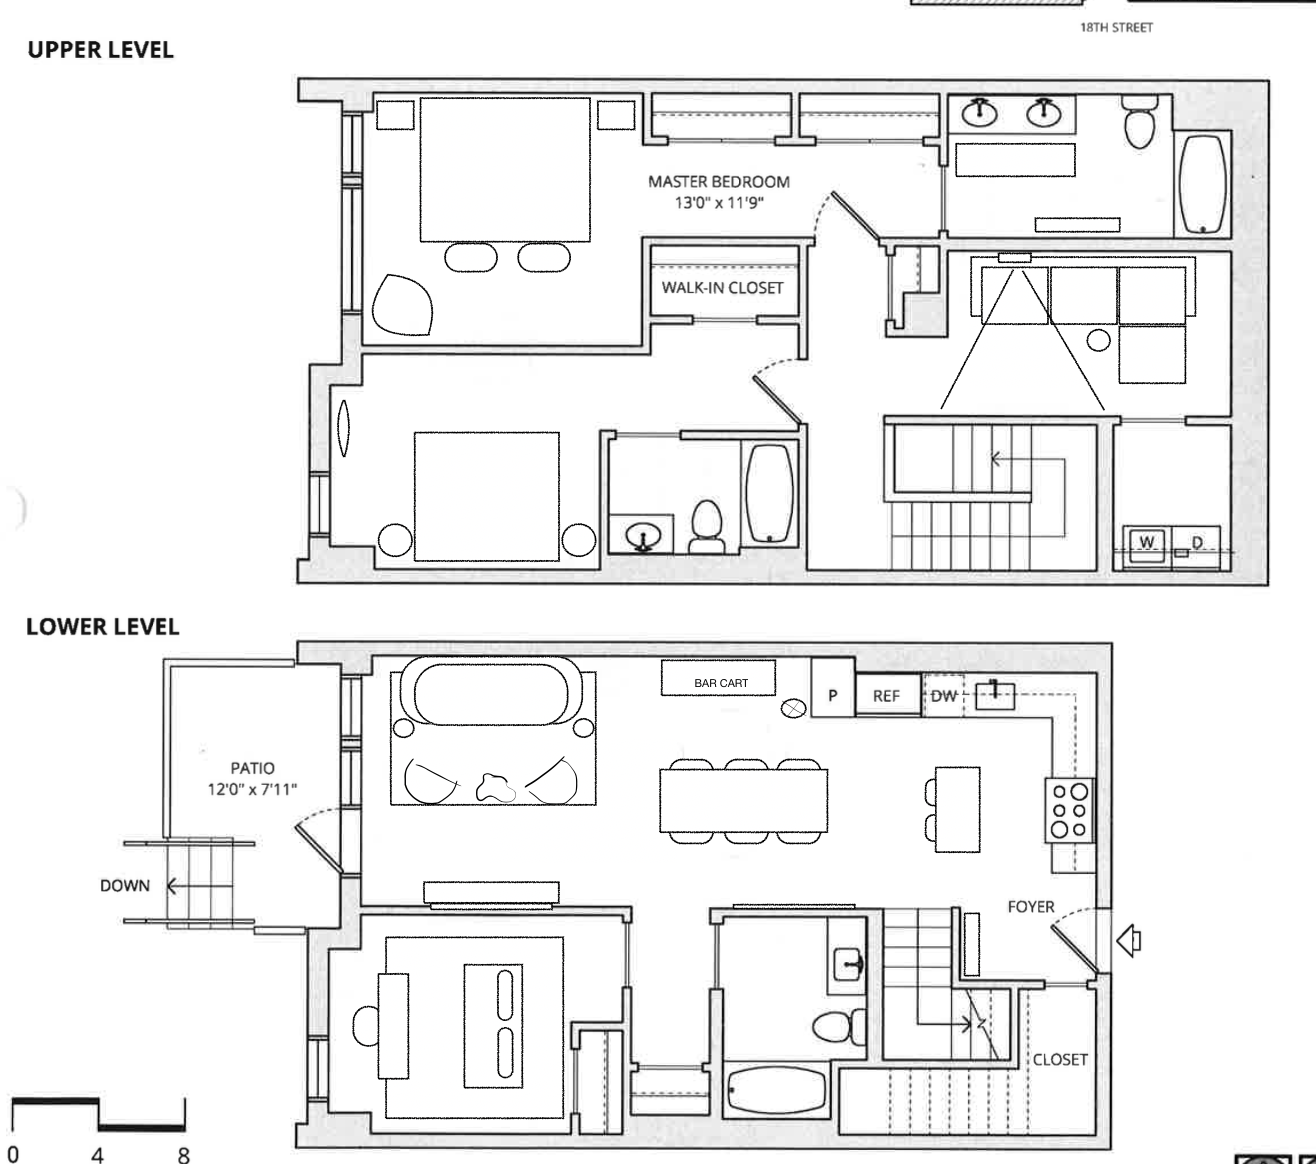 Mason and Mariposa 3 BDR Townhome Model Unit